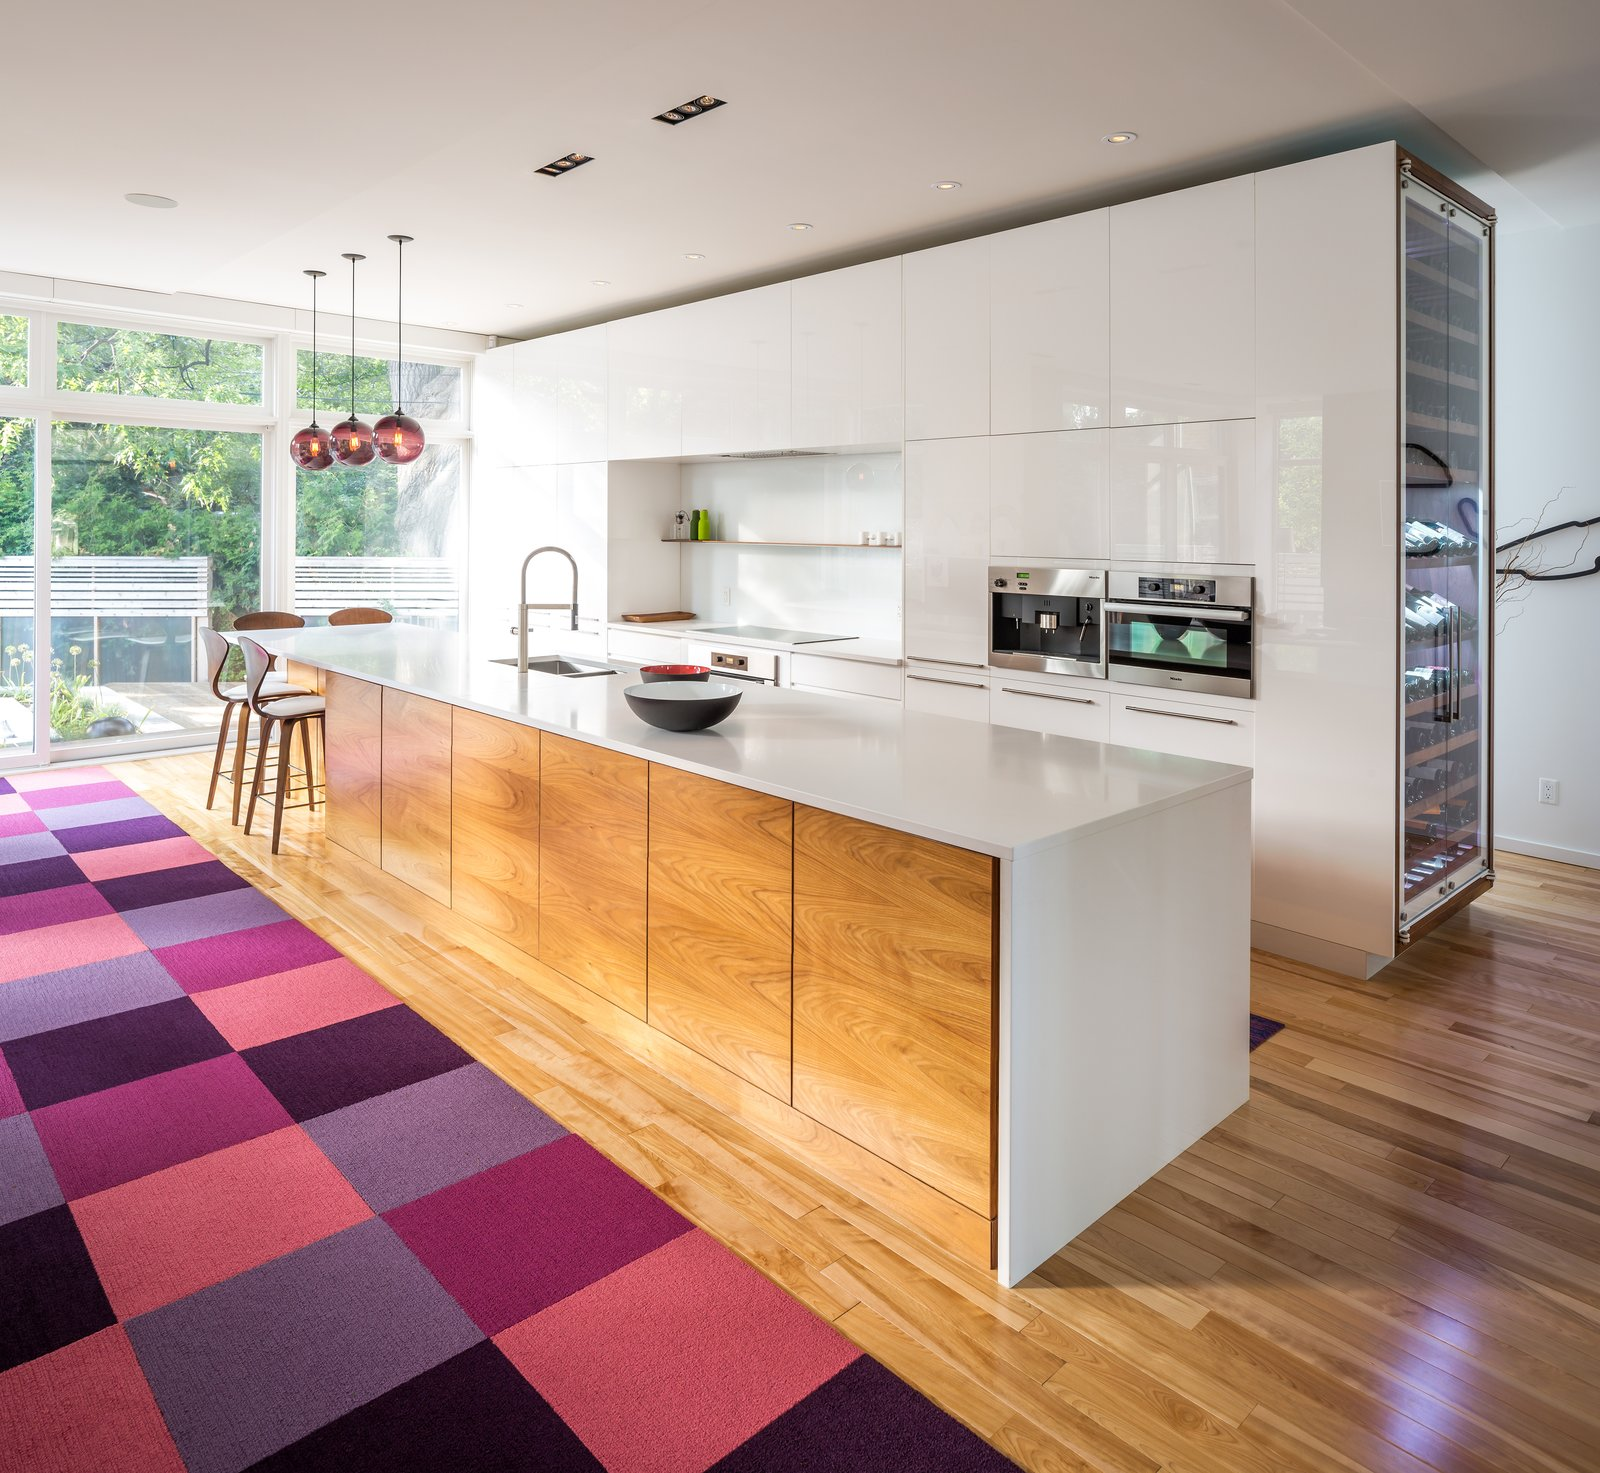 Photo 2 of 5 in Plum Modern Pendant Lighting Adds Pop of Color in Canadian Kitchen